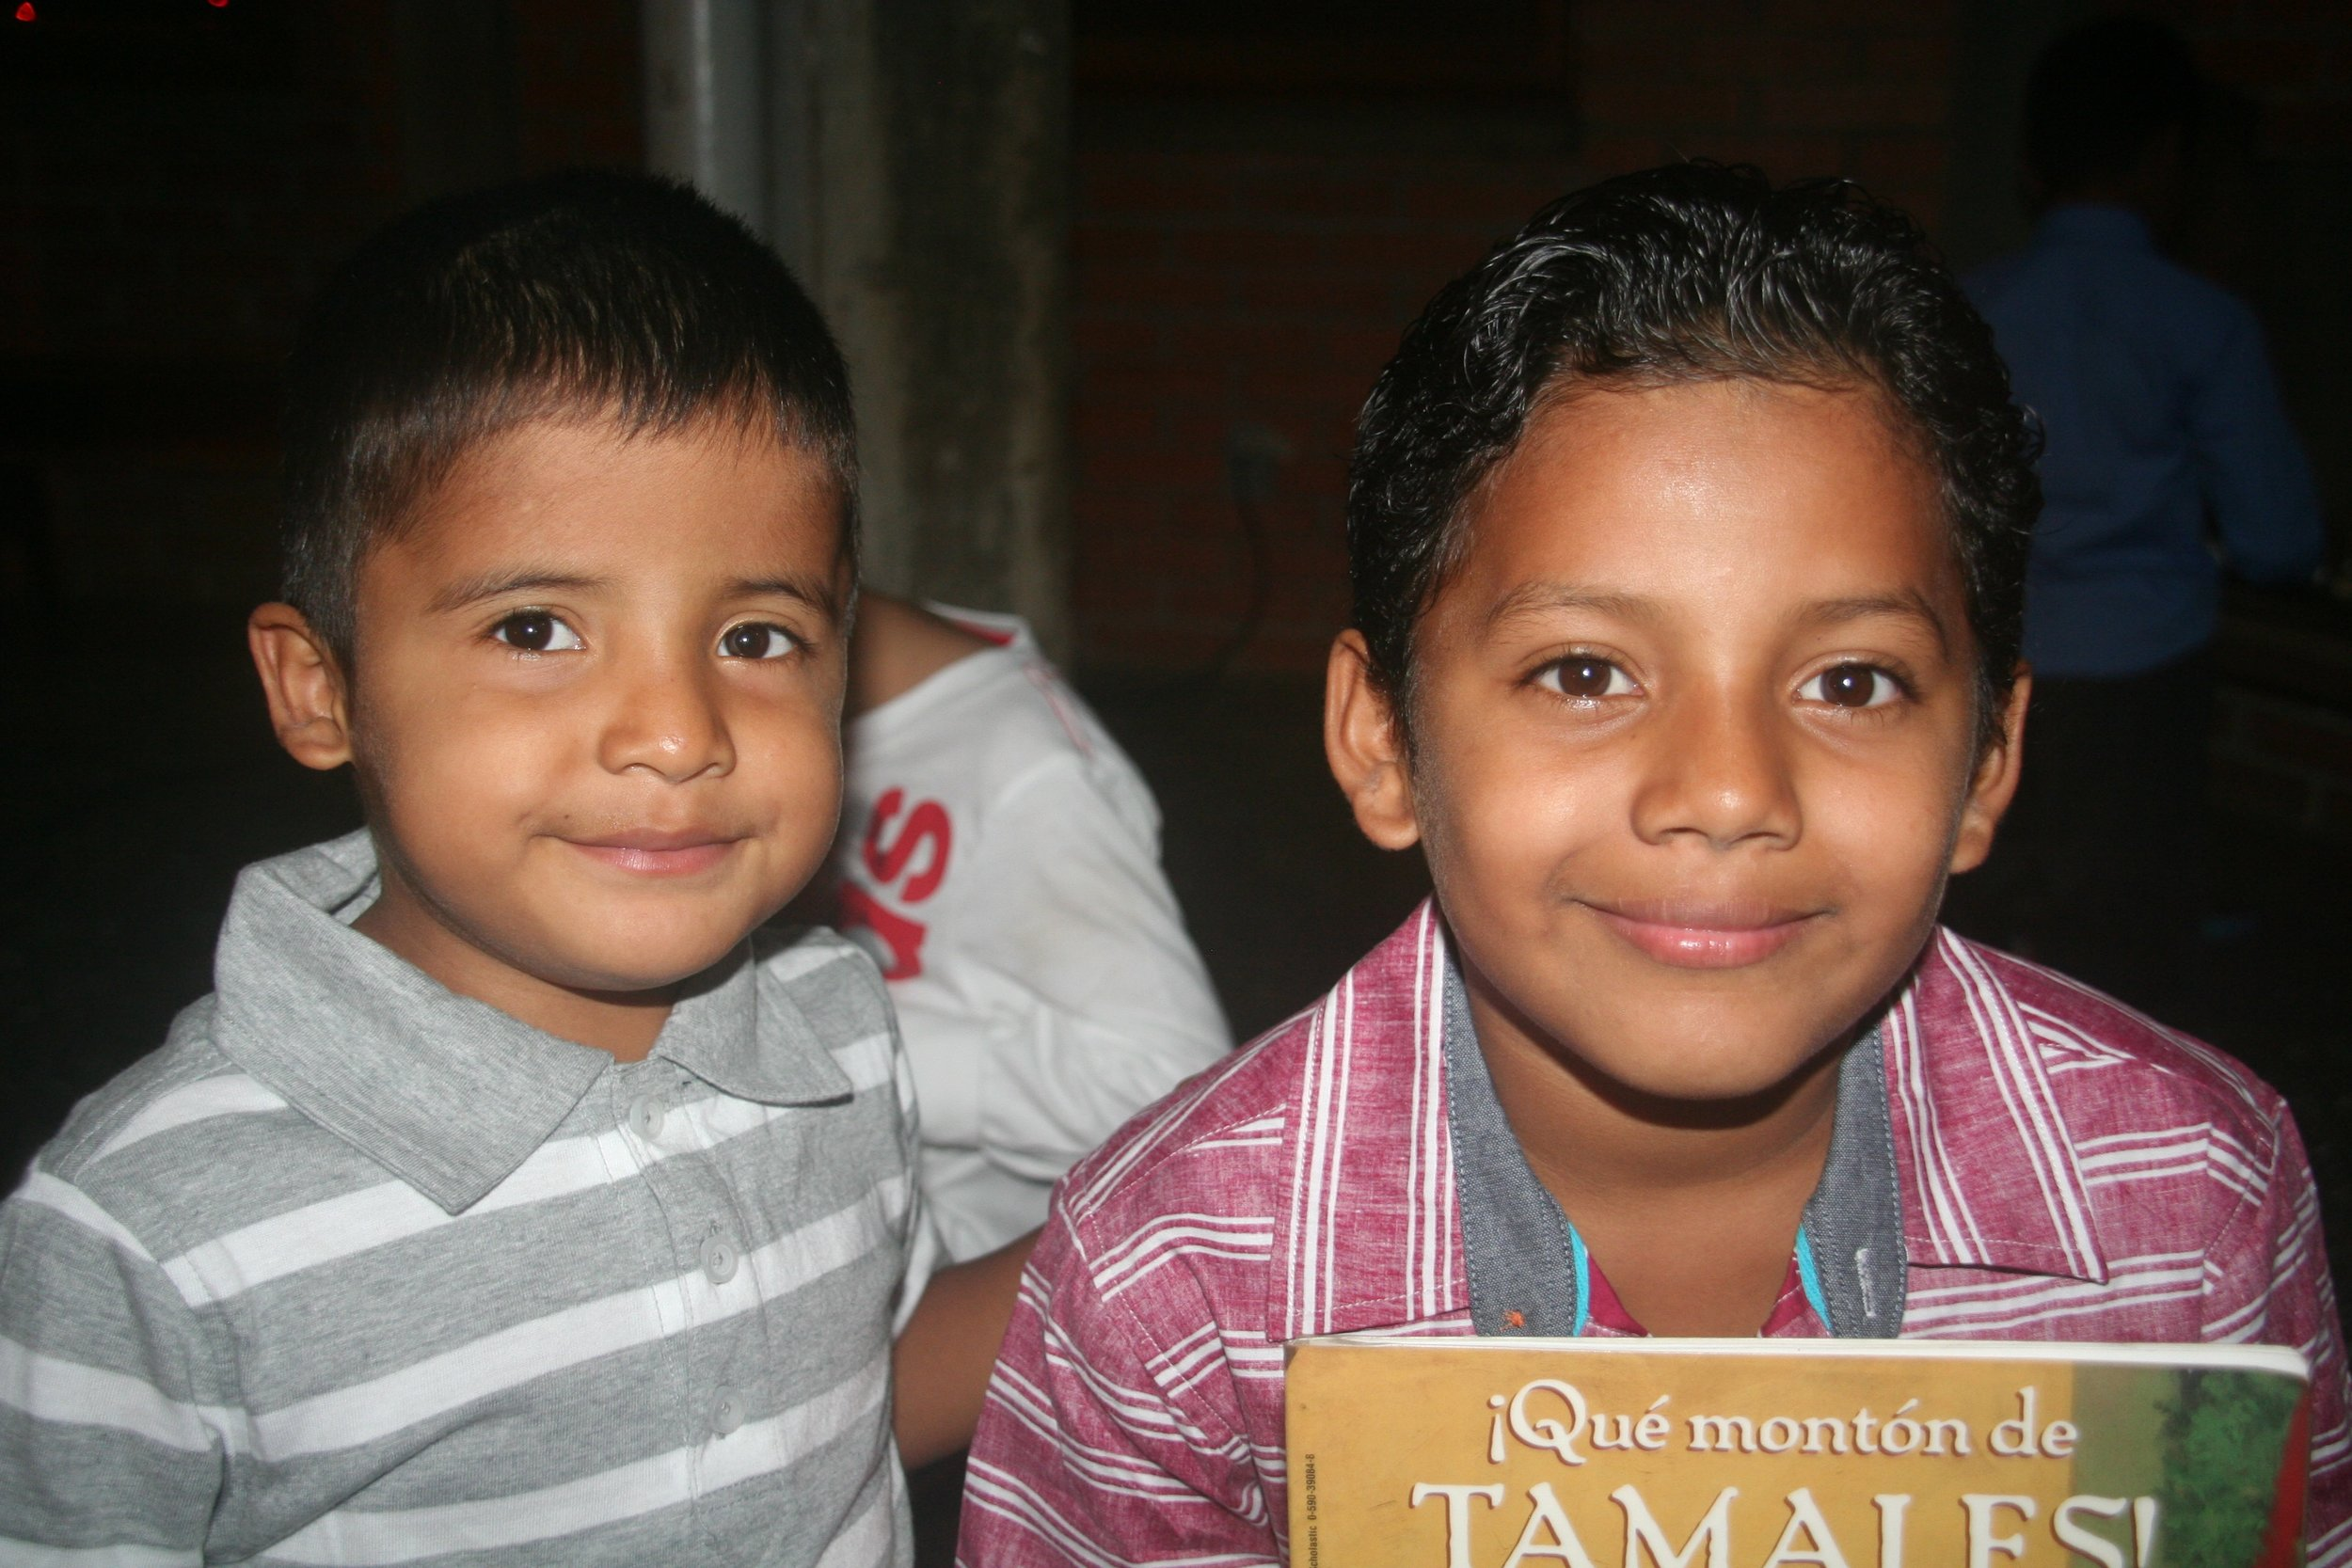 Isaac (left) and one of his older brothers